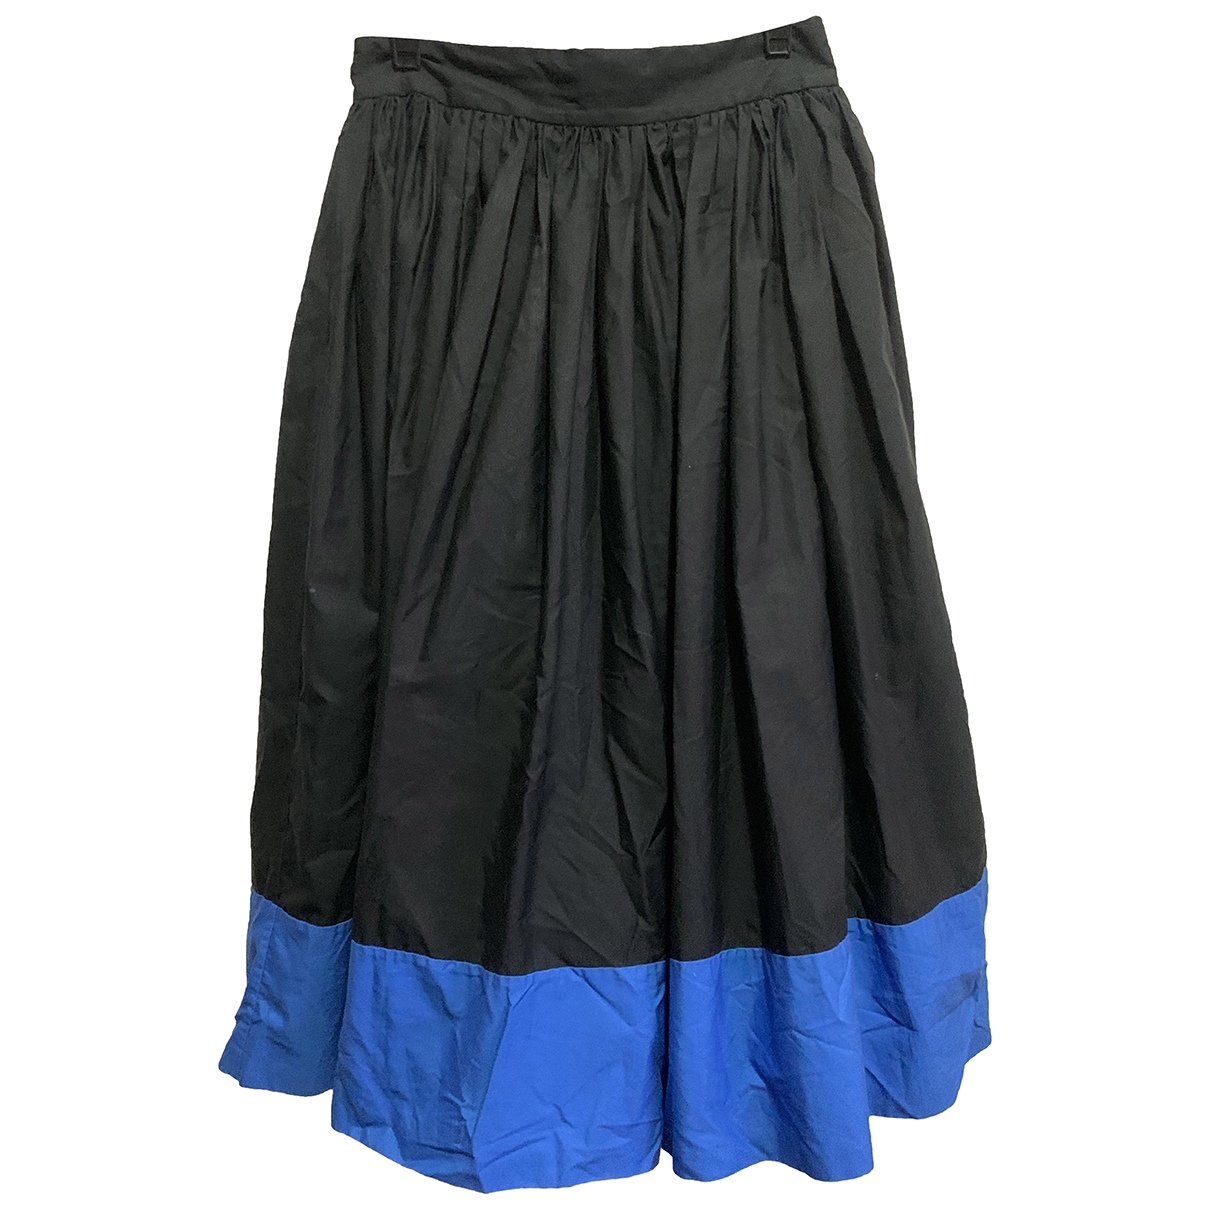 Alice & Olivia \N Black Cotton skirt for Women 2 0-5